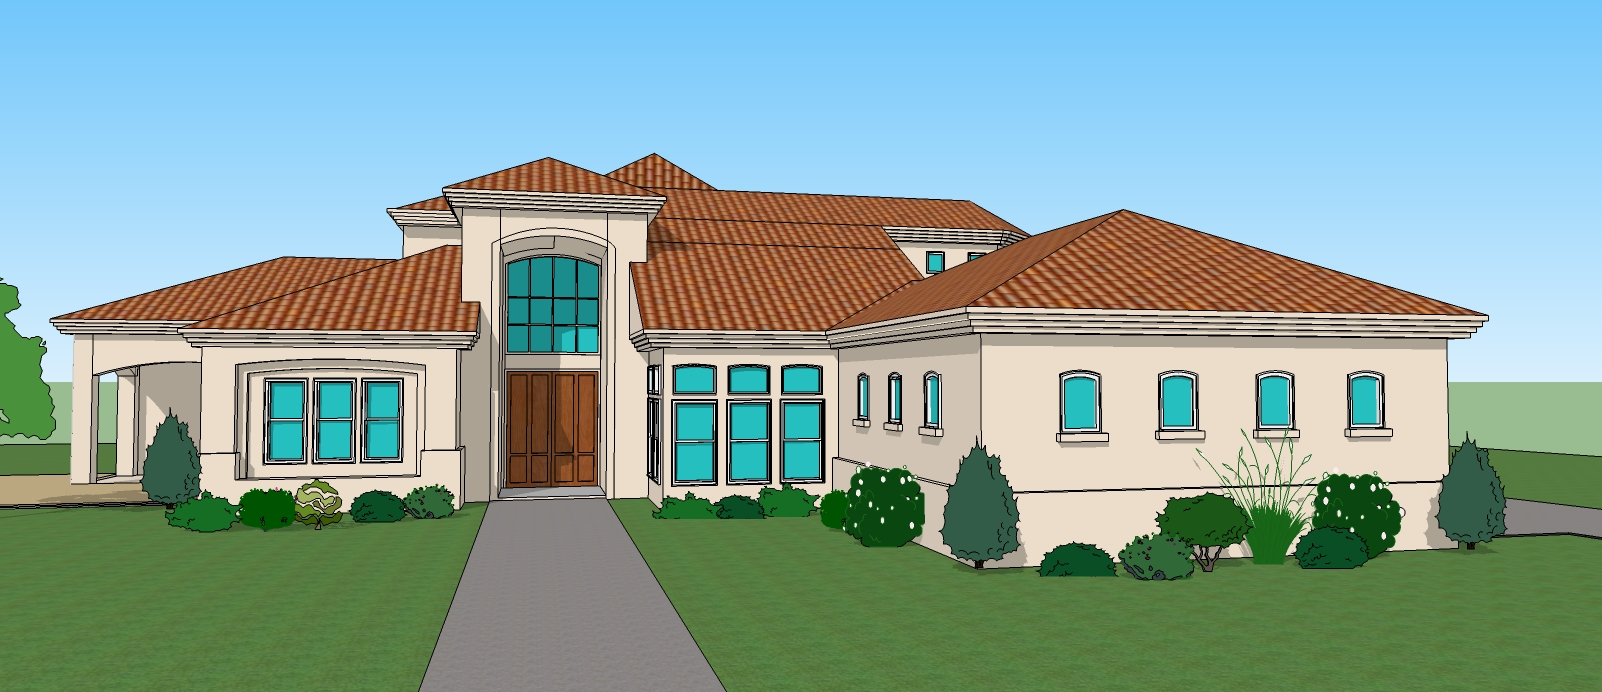 Mansion clipart simple house front Architectural House Rendering 3 Renderer